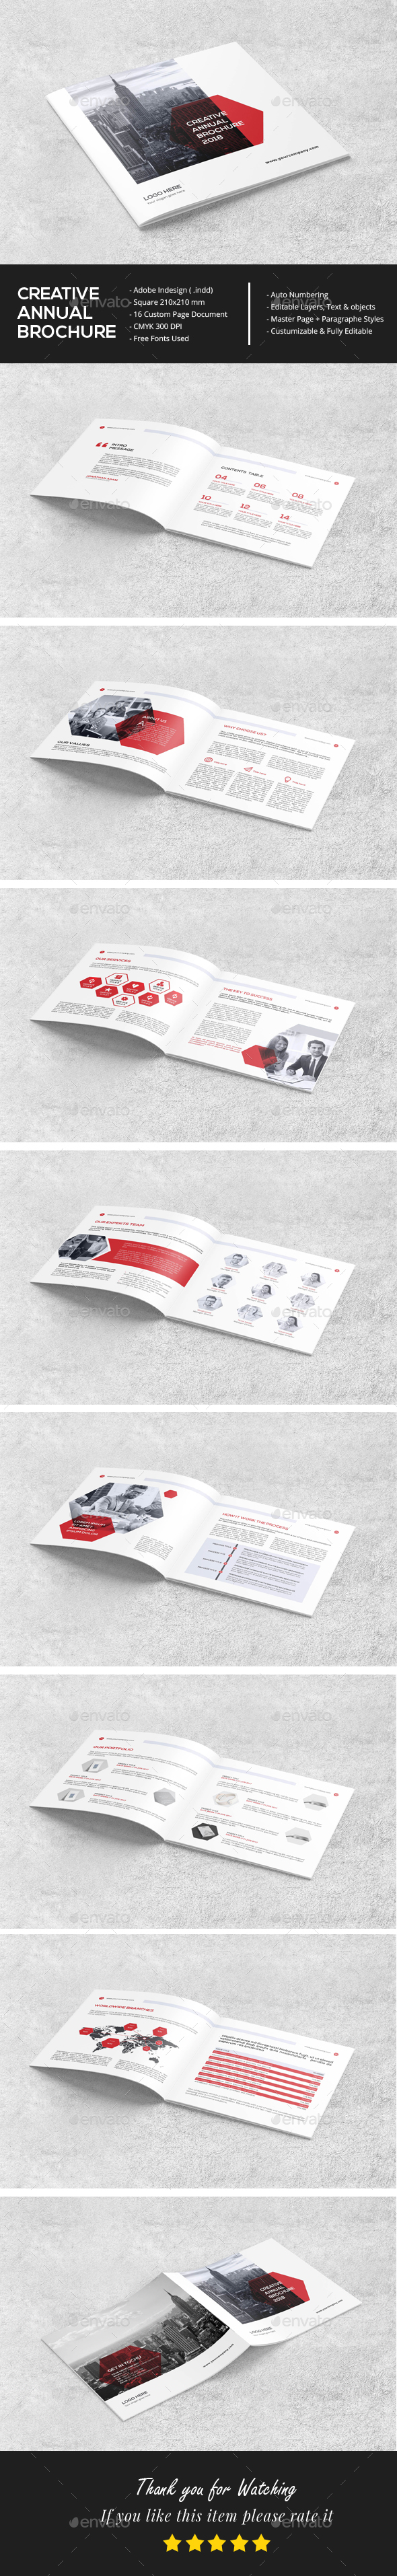 Square Clean Annual Brochure - Brochures Print Templates